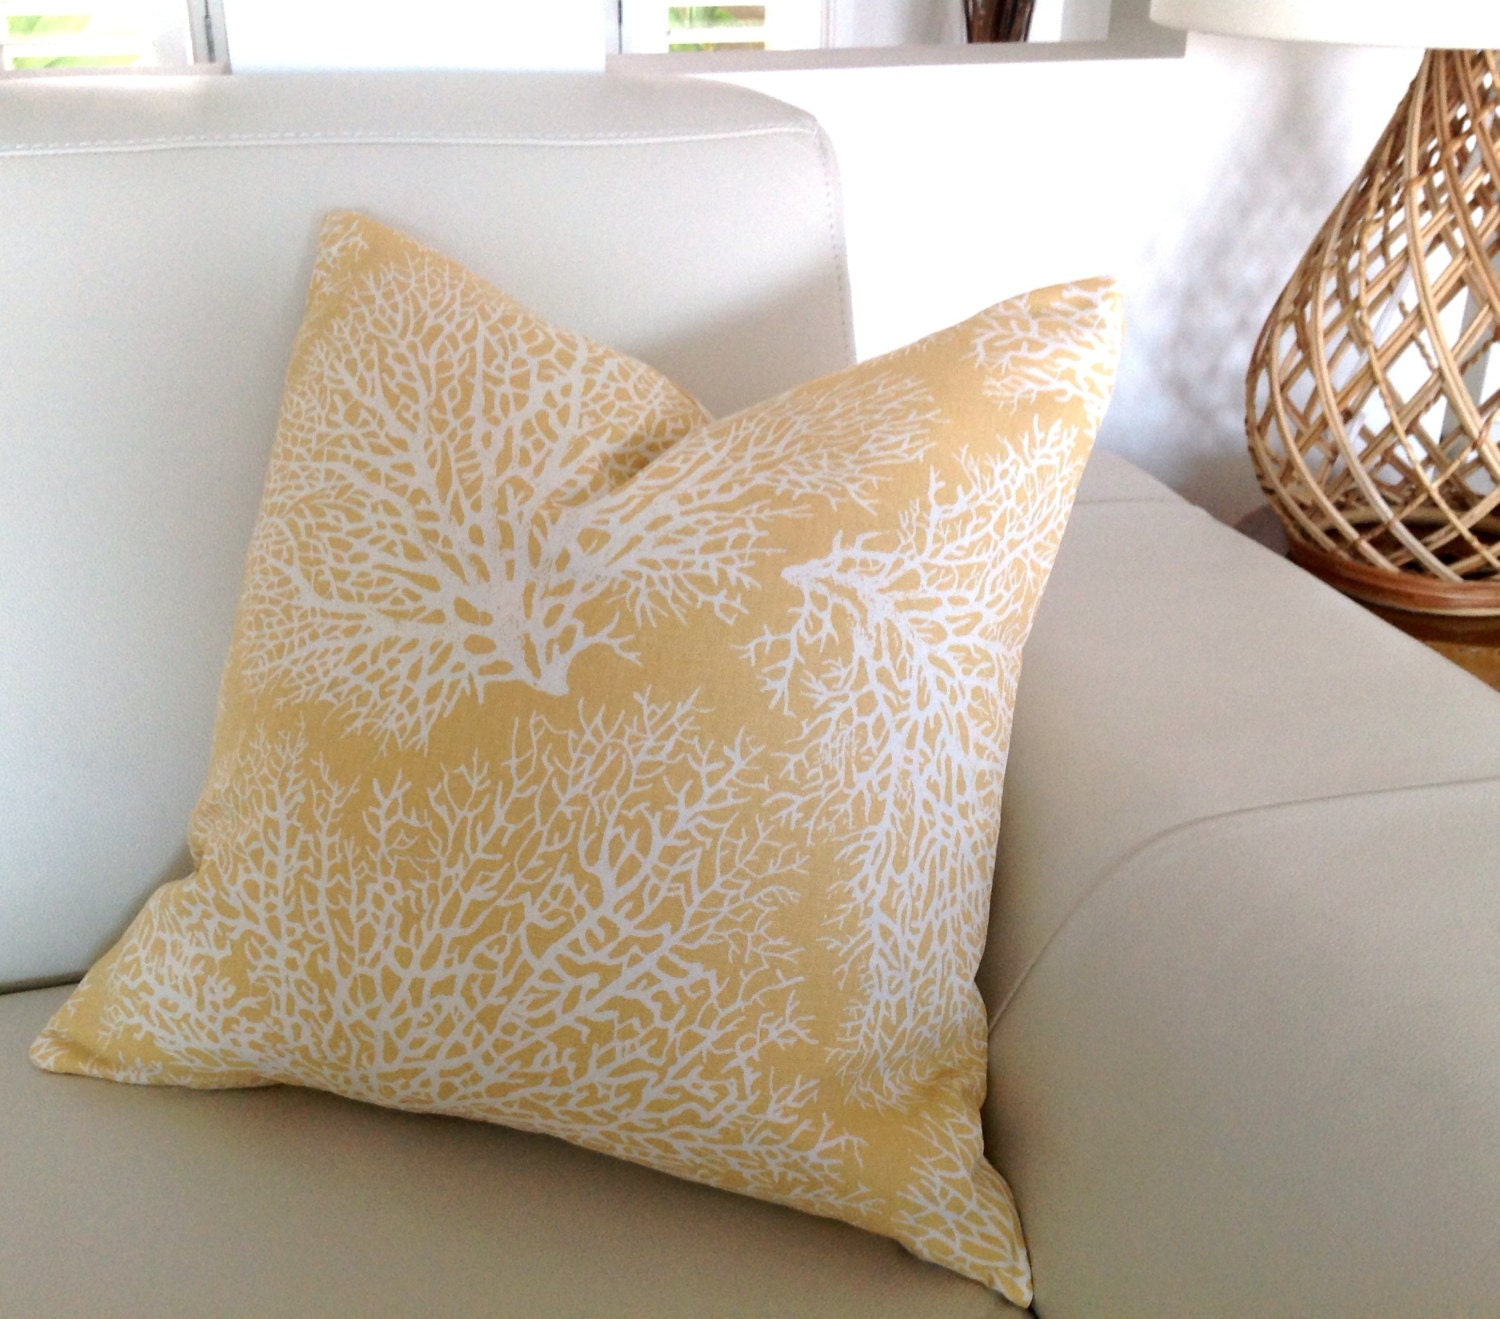 pillows make diy best theme pillow ideas beach to house design cover